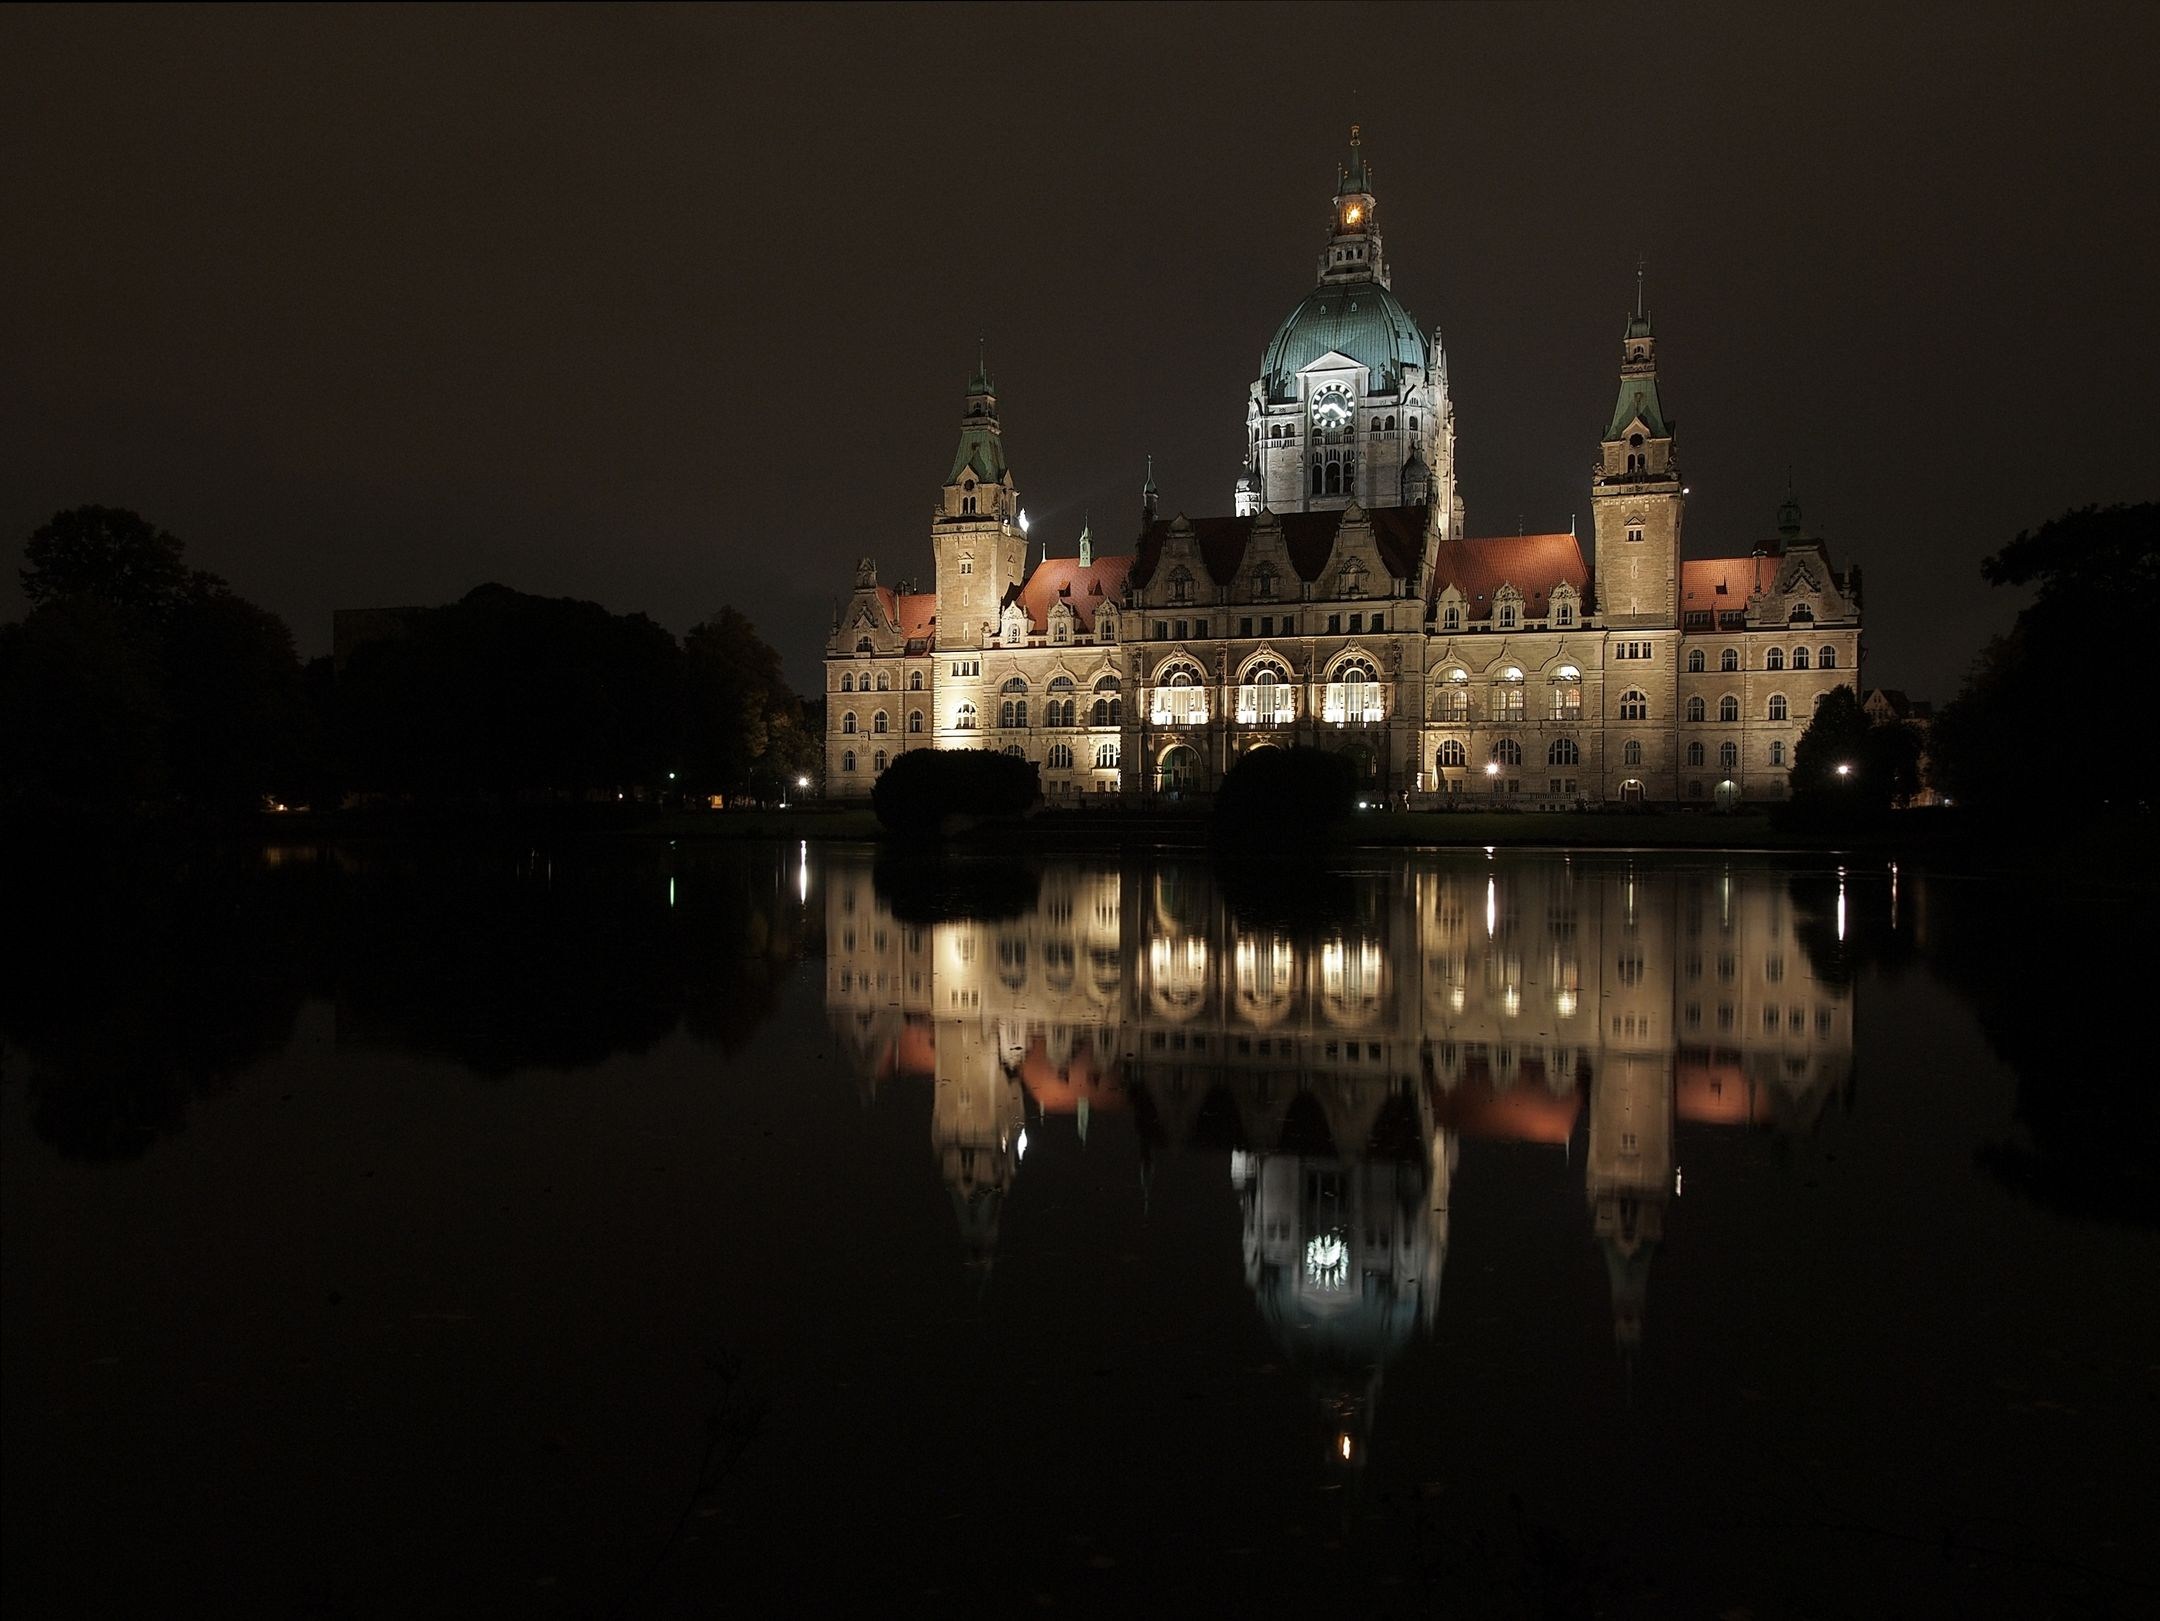 Neues Rathaus in Hannover.